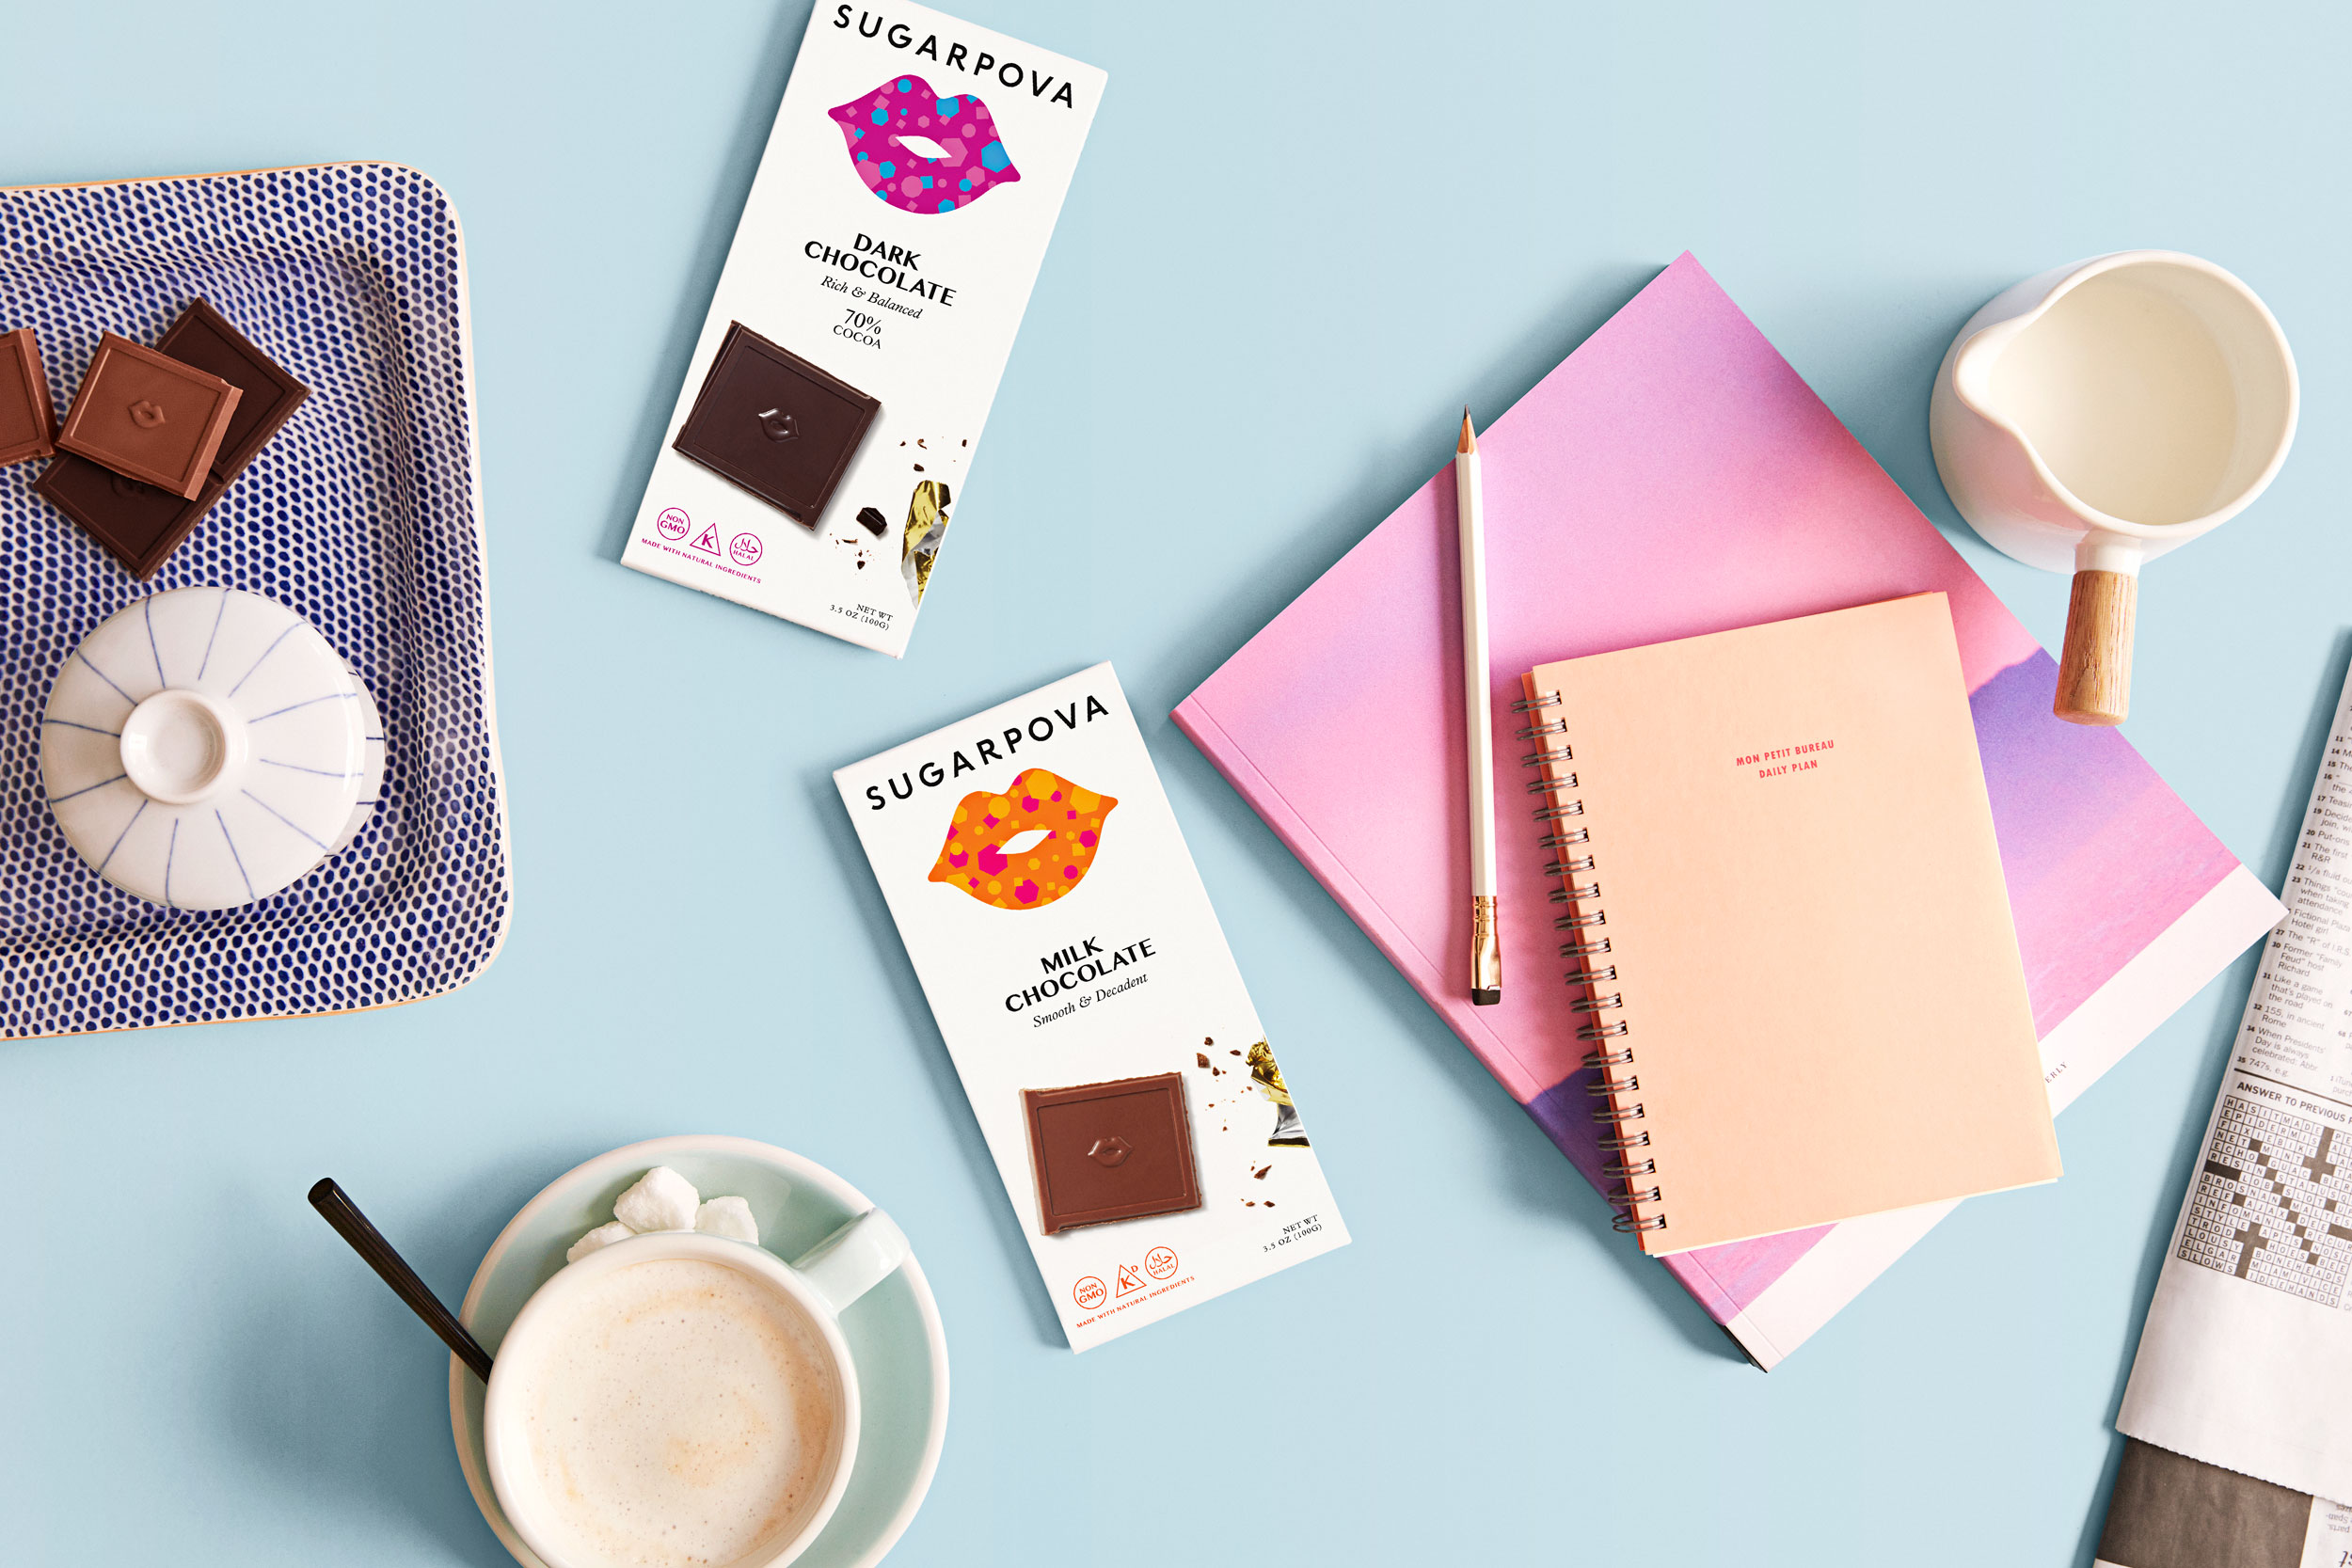 Chocolate bars, notebooks and coffee on a blue table - Kimberly Genevieve Los Angeles Lifestyle Advertising Photographer